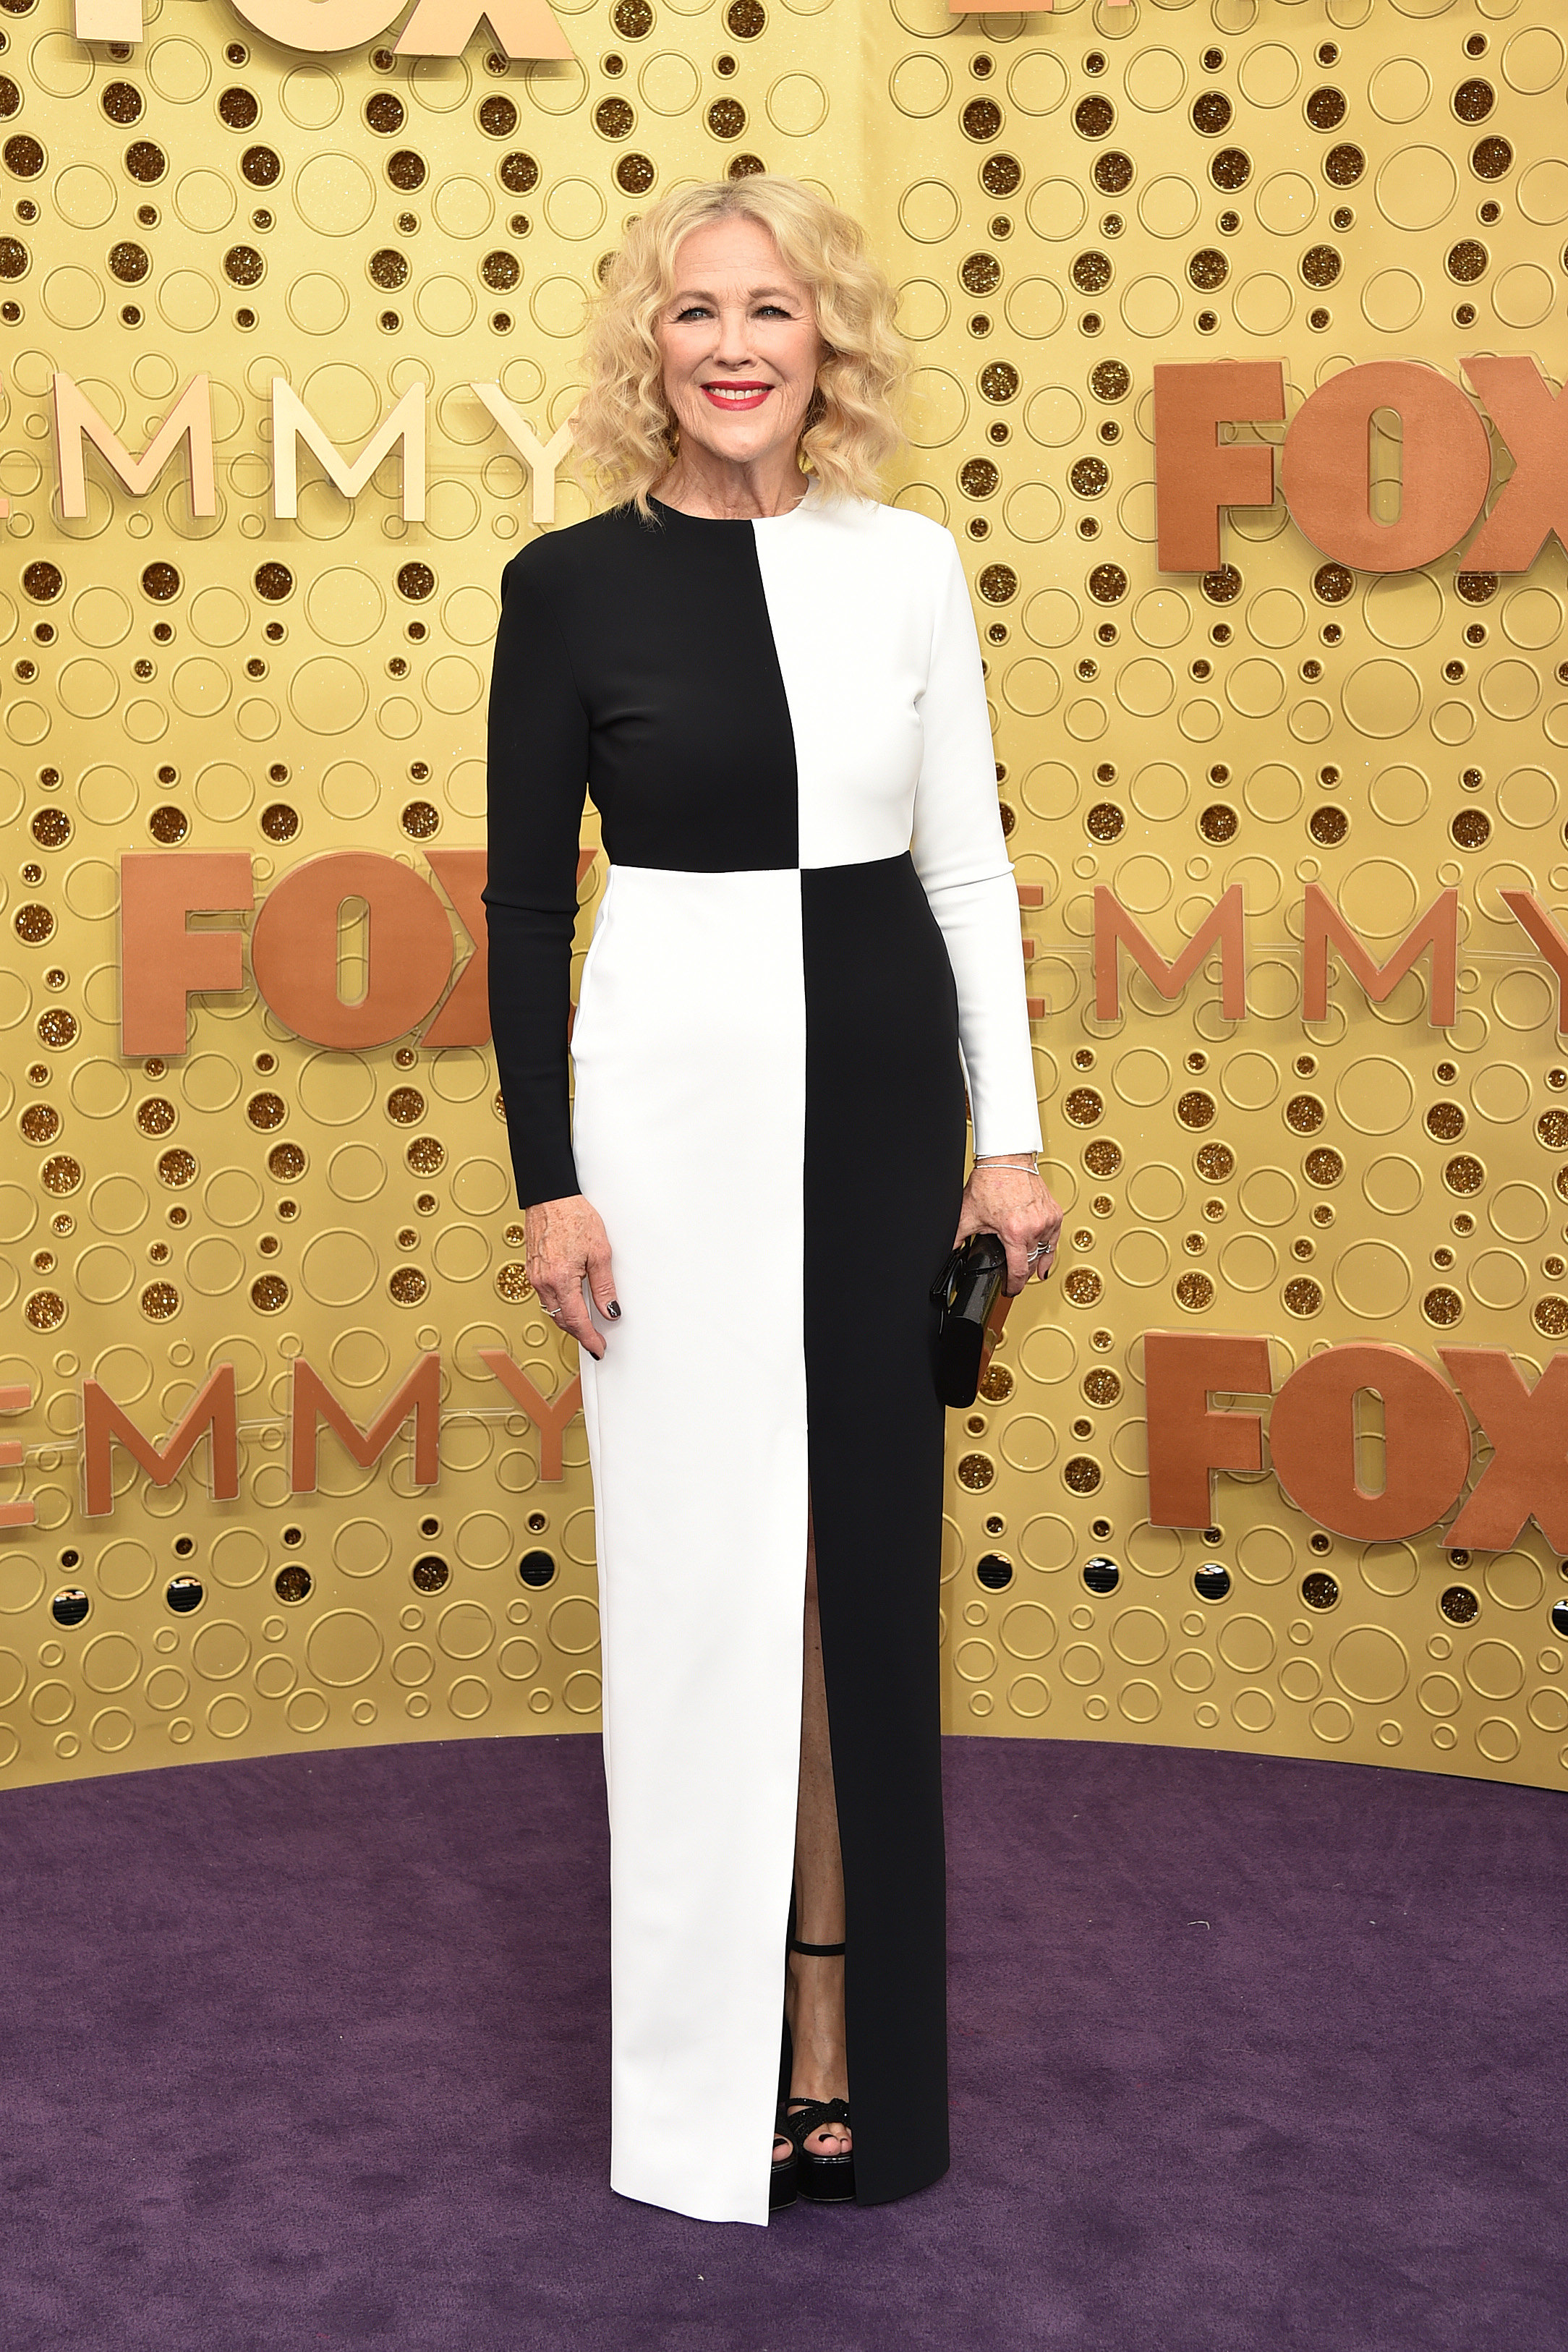 Catherine O'Hara, 71st Emmy Awards 2019